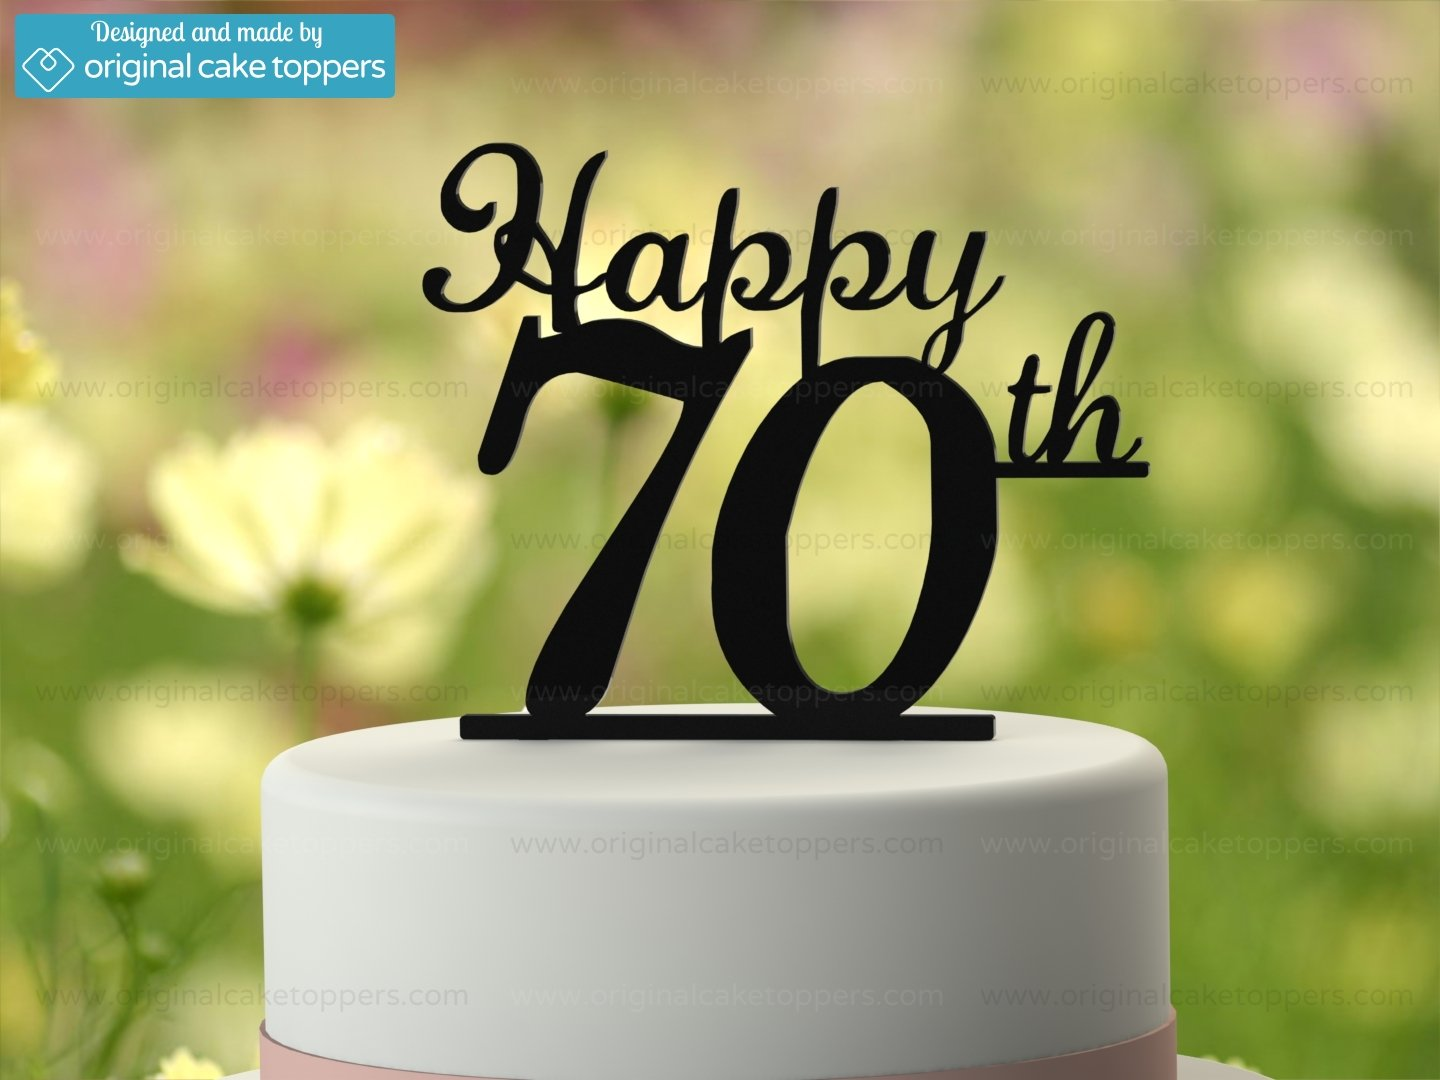 Amazon.com: Original Cake Toppers Happy 70th - White: Kitchen & Dining